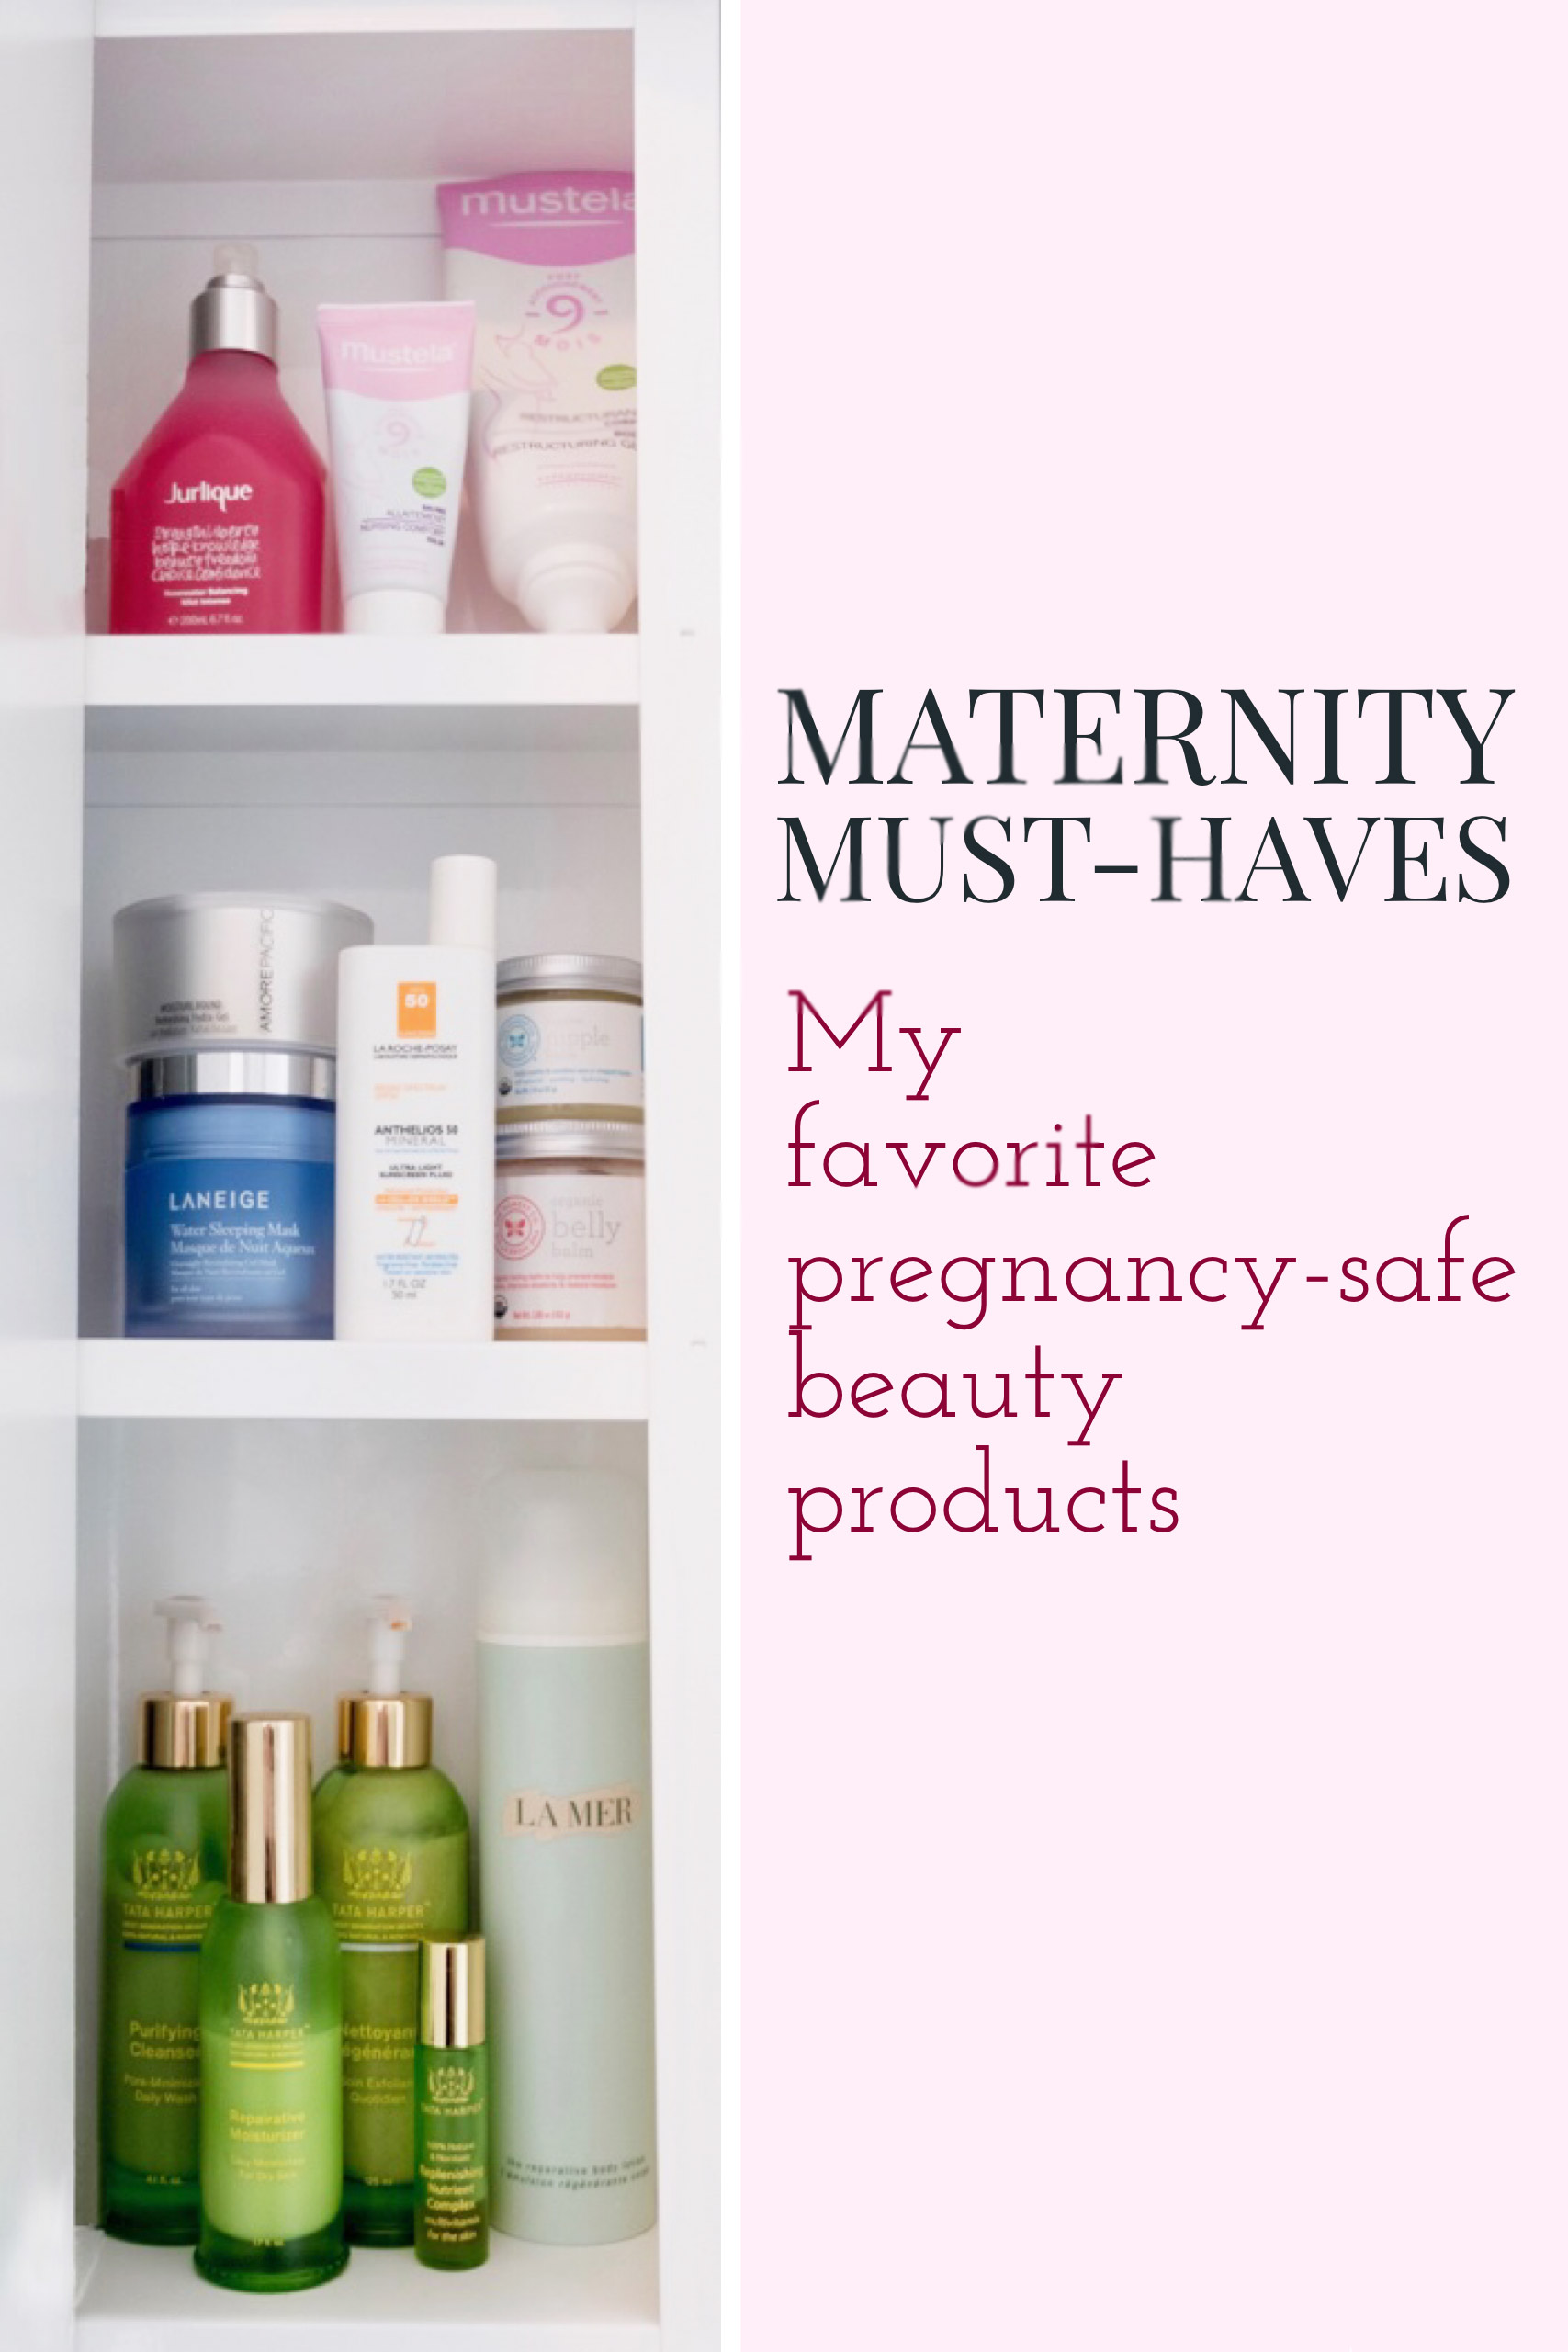 Maternity Must-Haves - Pregnancy-Safe Beauty Products